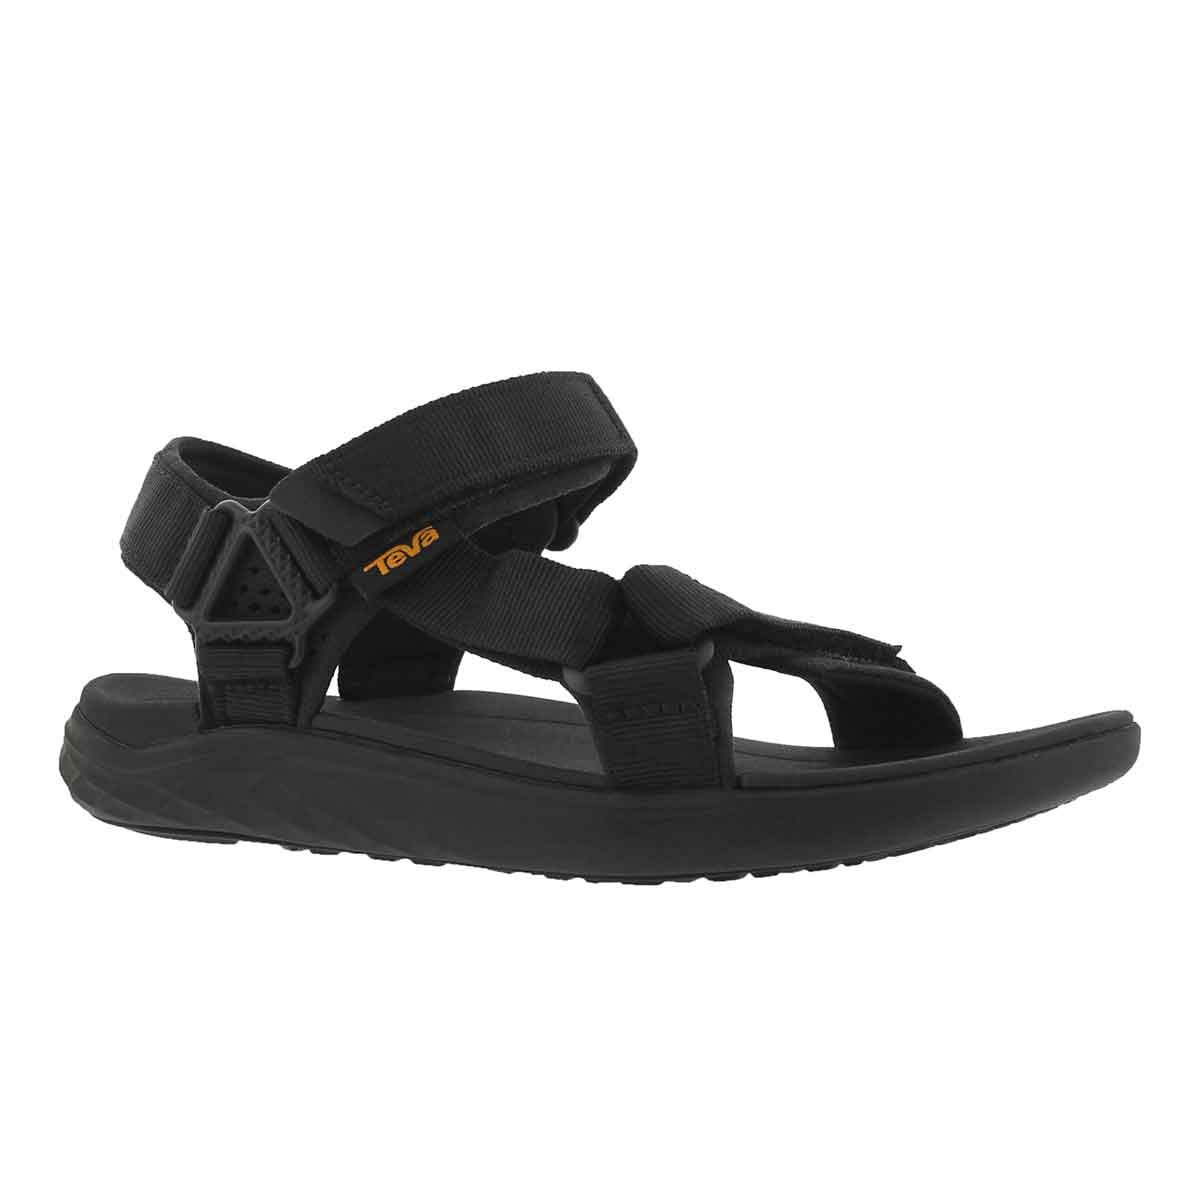 Women's TERRA-FLOAT 2 UNIVERSAL blk sandals